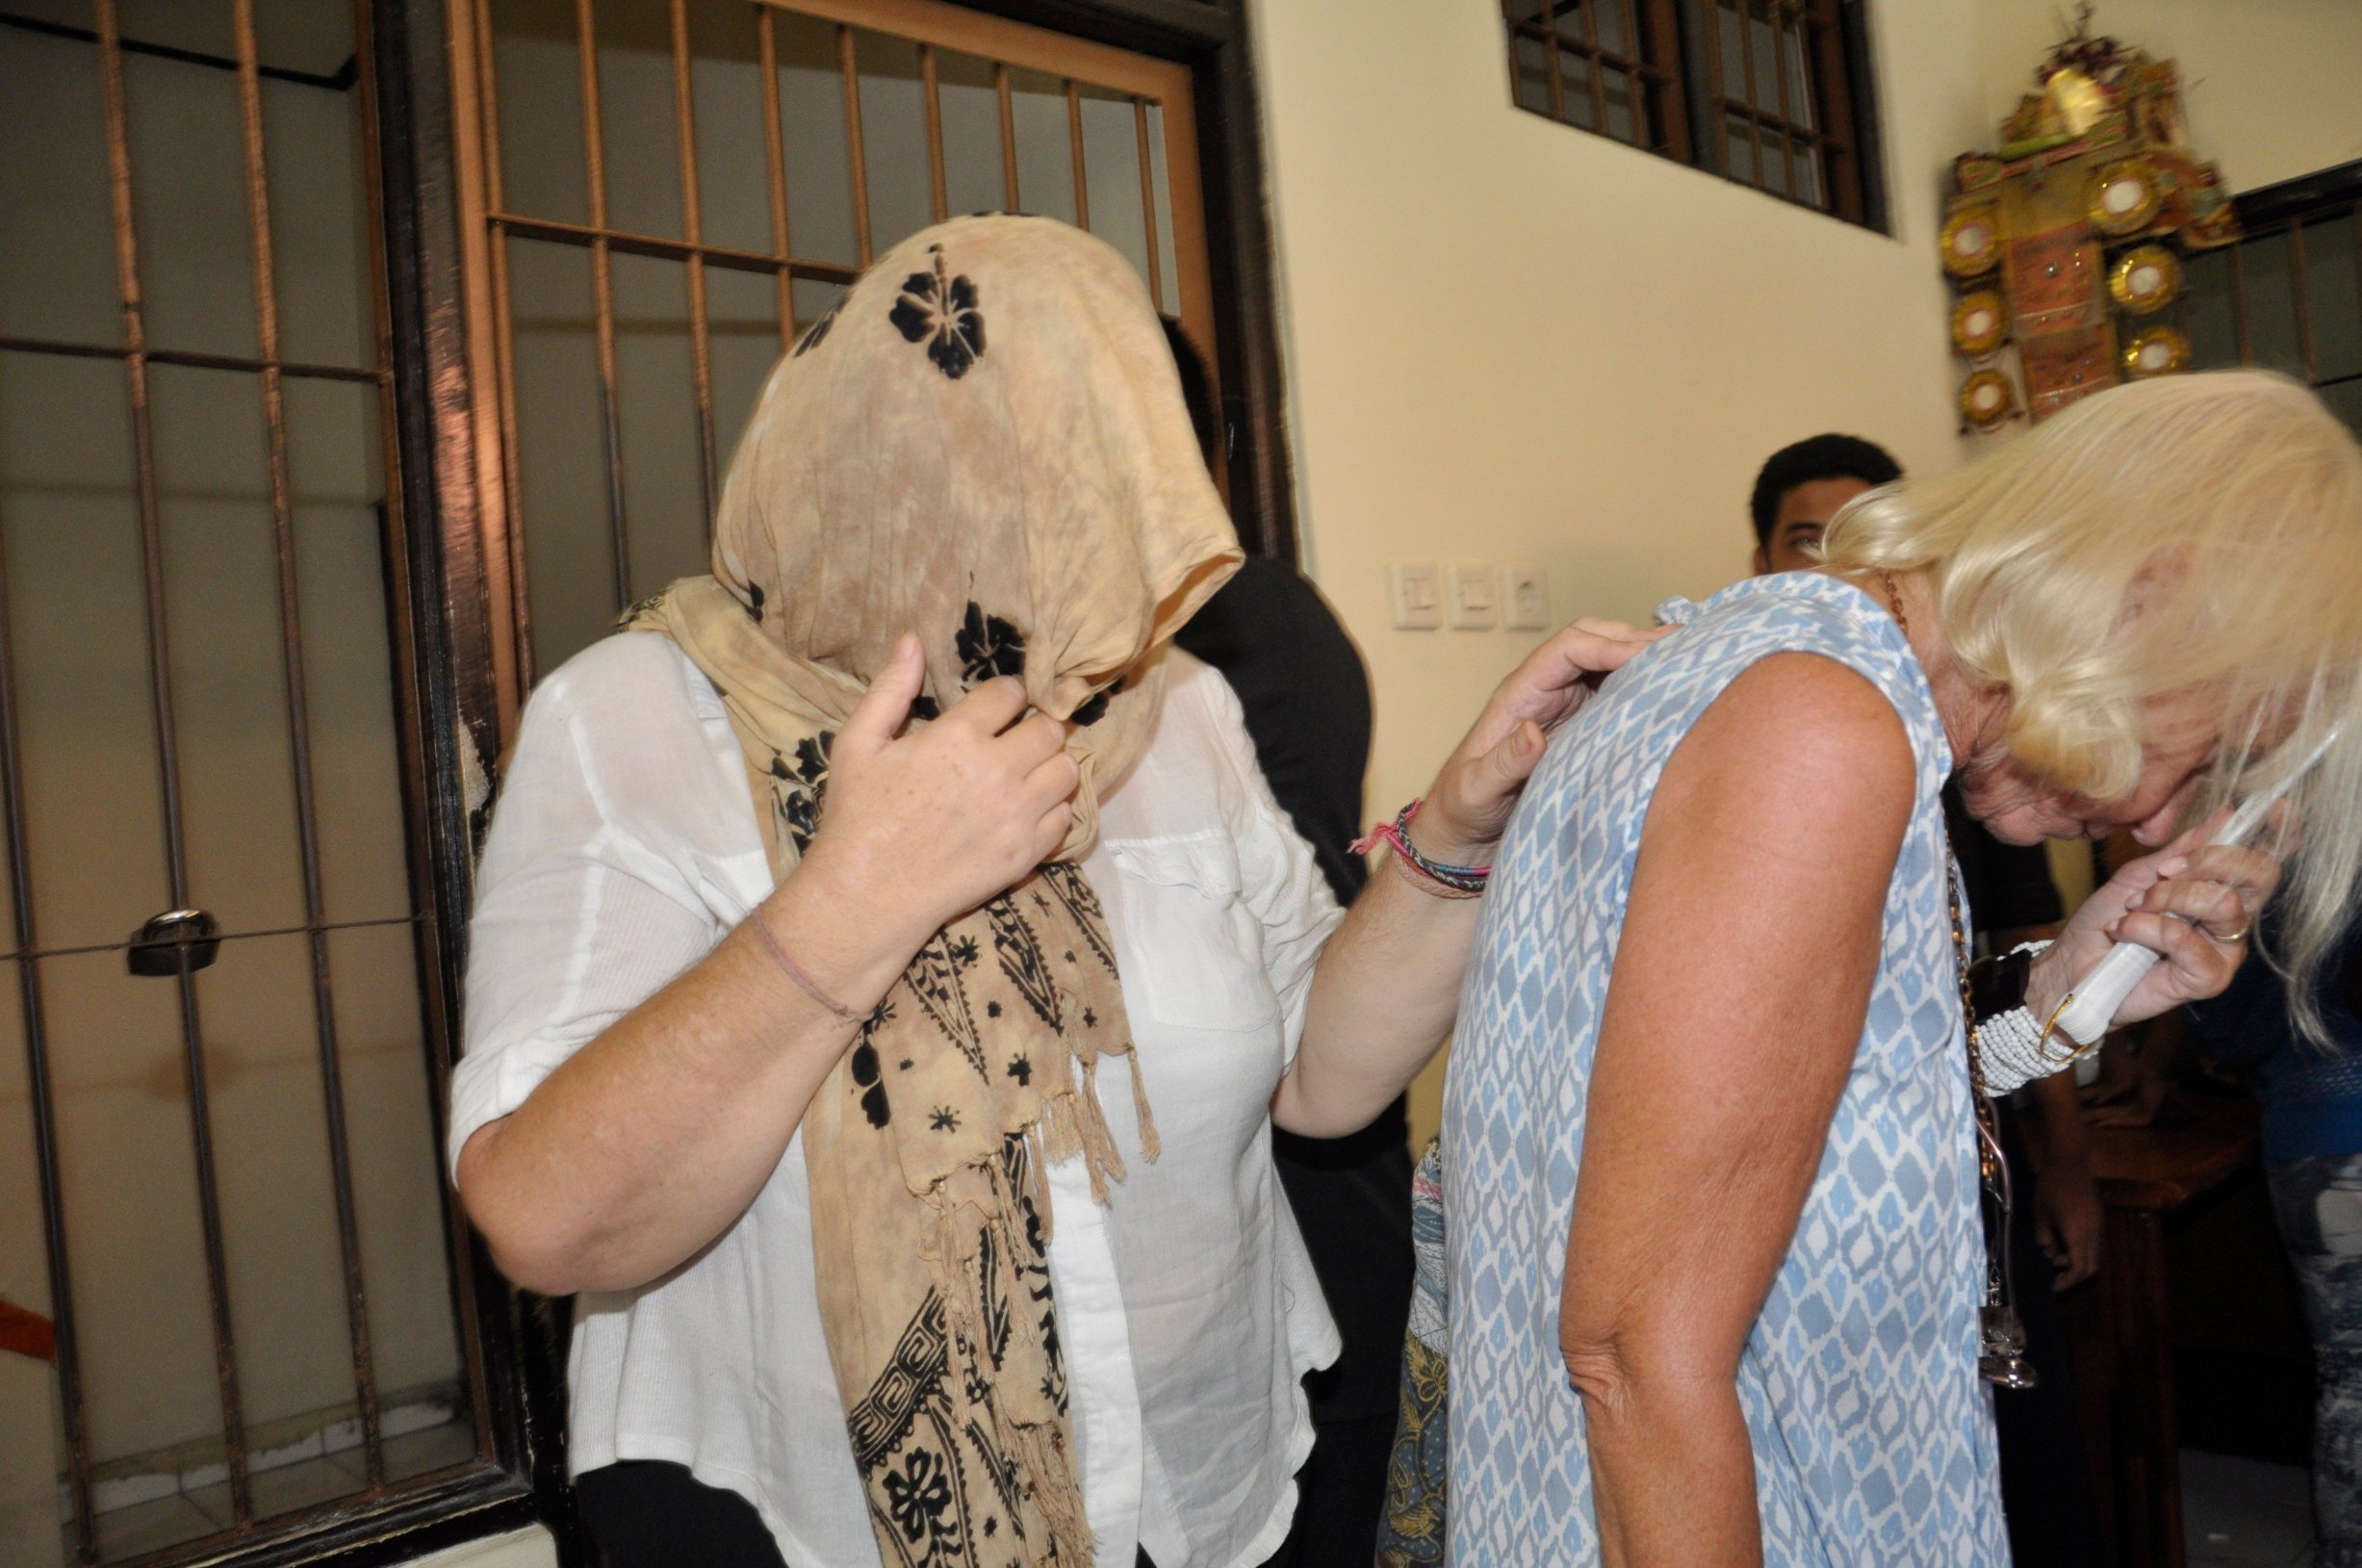 BALI, INDONESIA - JANUARY 22: Lindsay Sandiford, 56, leaves her cell to attend court from drug trafficking on January 22, 2013 in Bali, Indonesia., Image: 152039115, License: Rights-managed, Restrictions: , Model Release: no, Credit line: Profimedia, Barcroft Media